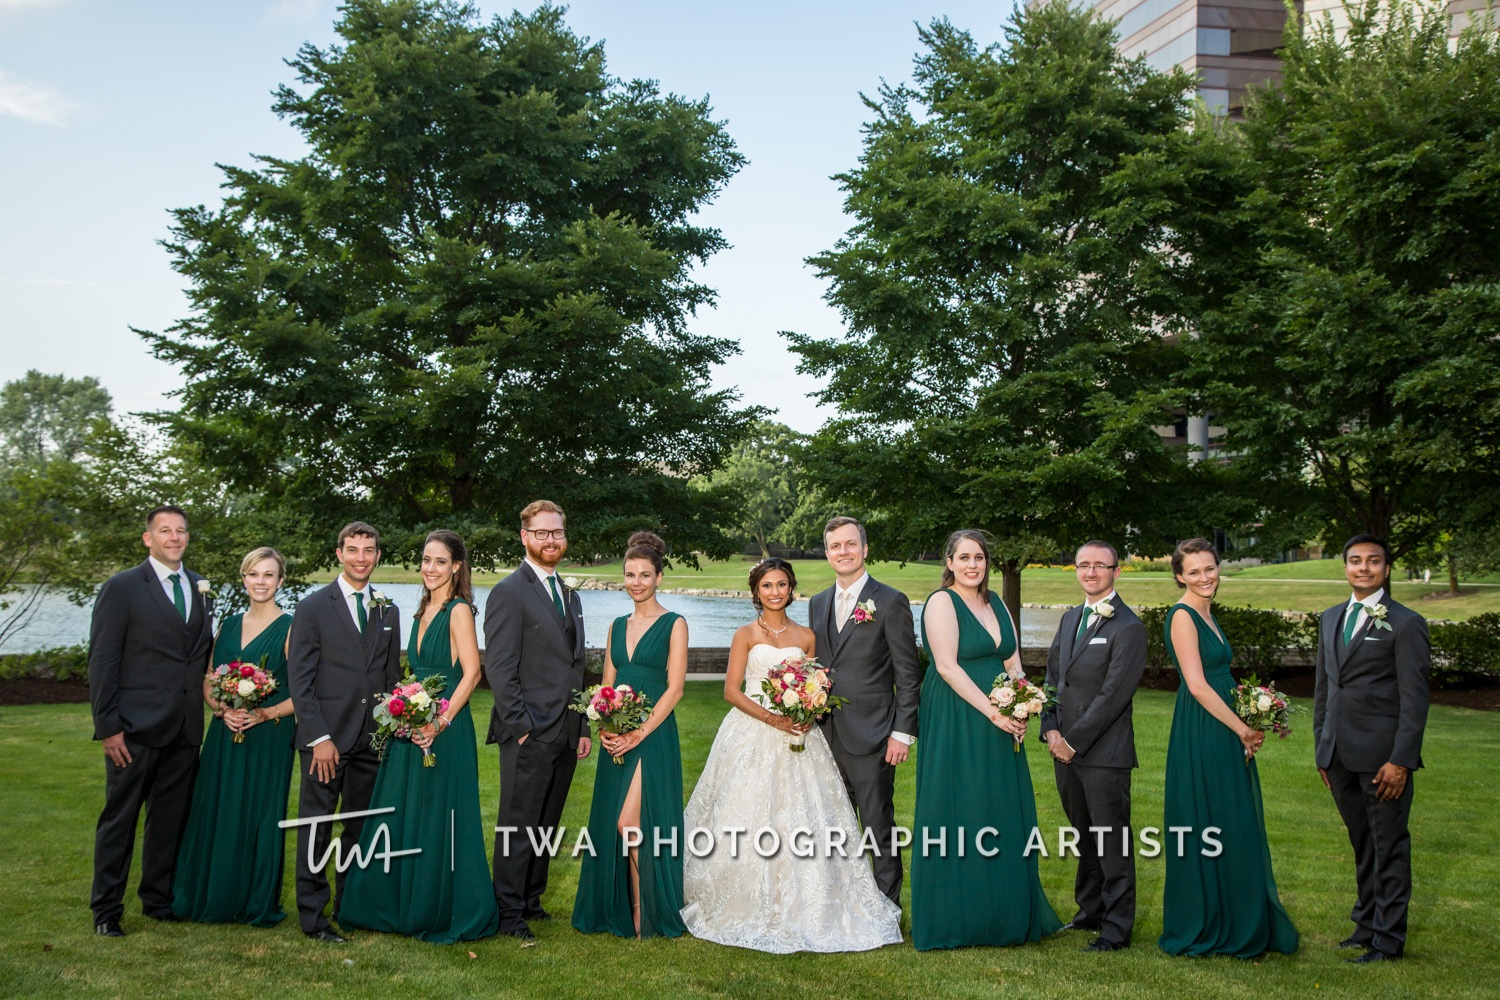 Chicago-Wedding-Photographer-TWA-Photographic-Artists-Shah_Billings_WM_TL-1004